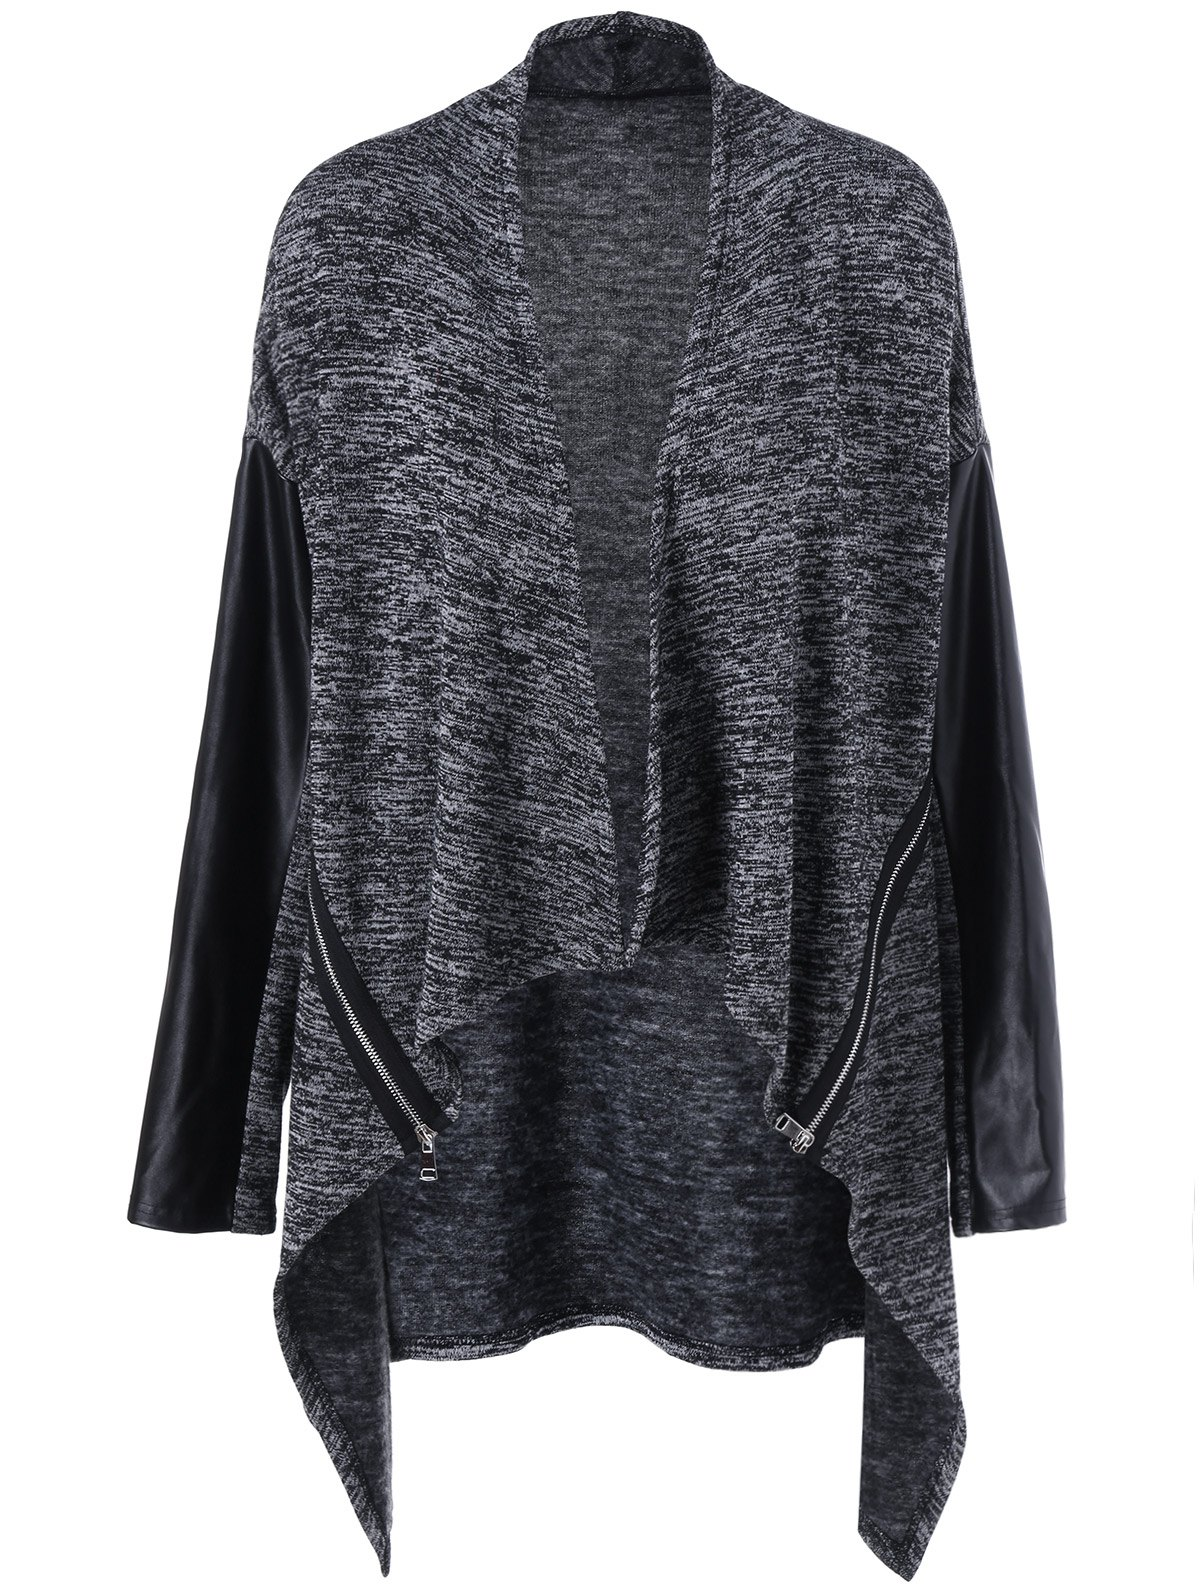 Asymmetrical Open Front Plus Size Knit Cardigan inc new gray women s size small ps petite open front ribbed cardigan sweater $79